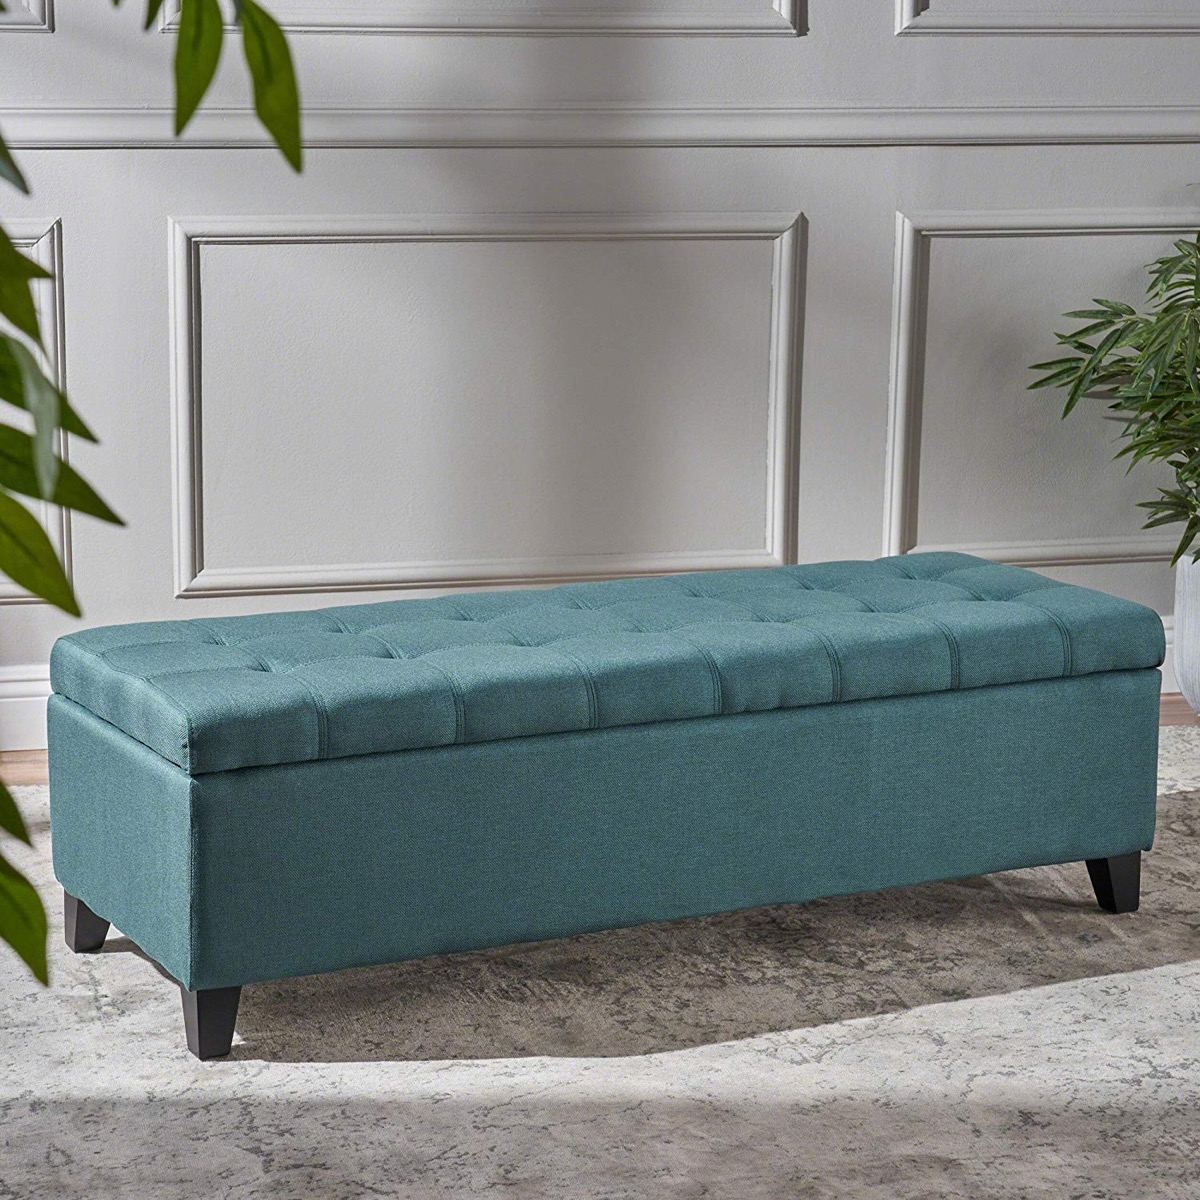 teal-upholstered-bench-with-storage